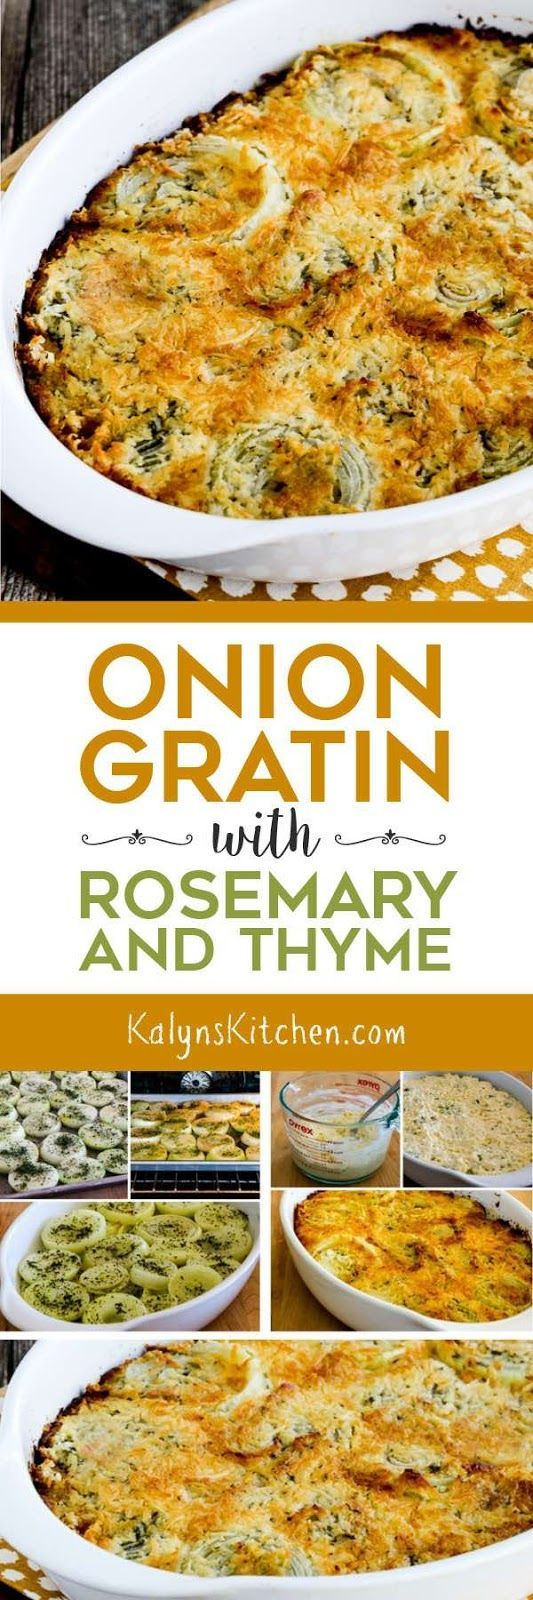 Onion Gratin with Rosemary and Thyme is the perfect amazing side dish ...